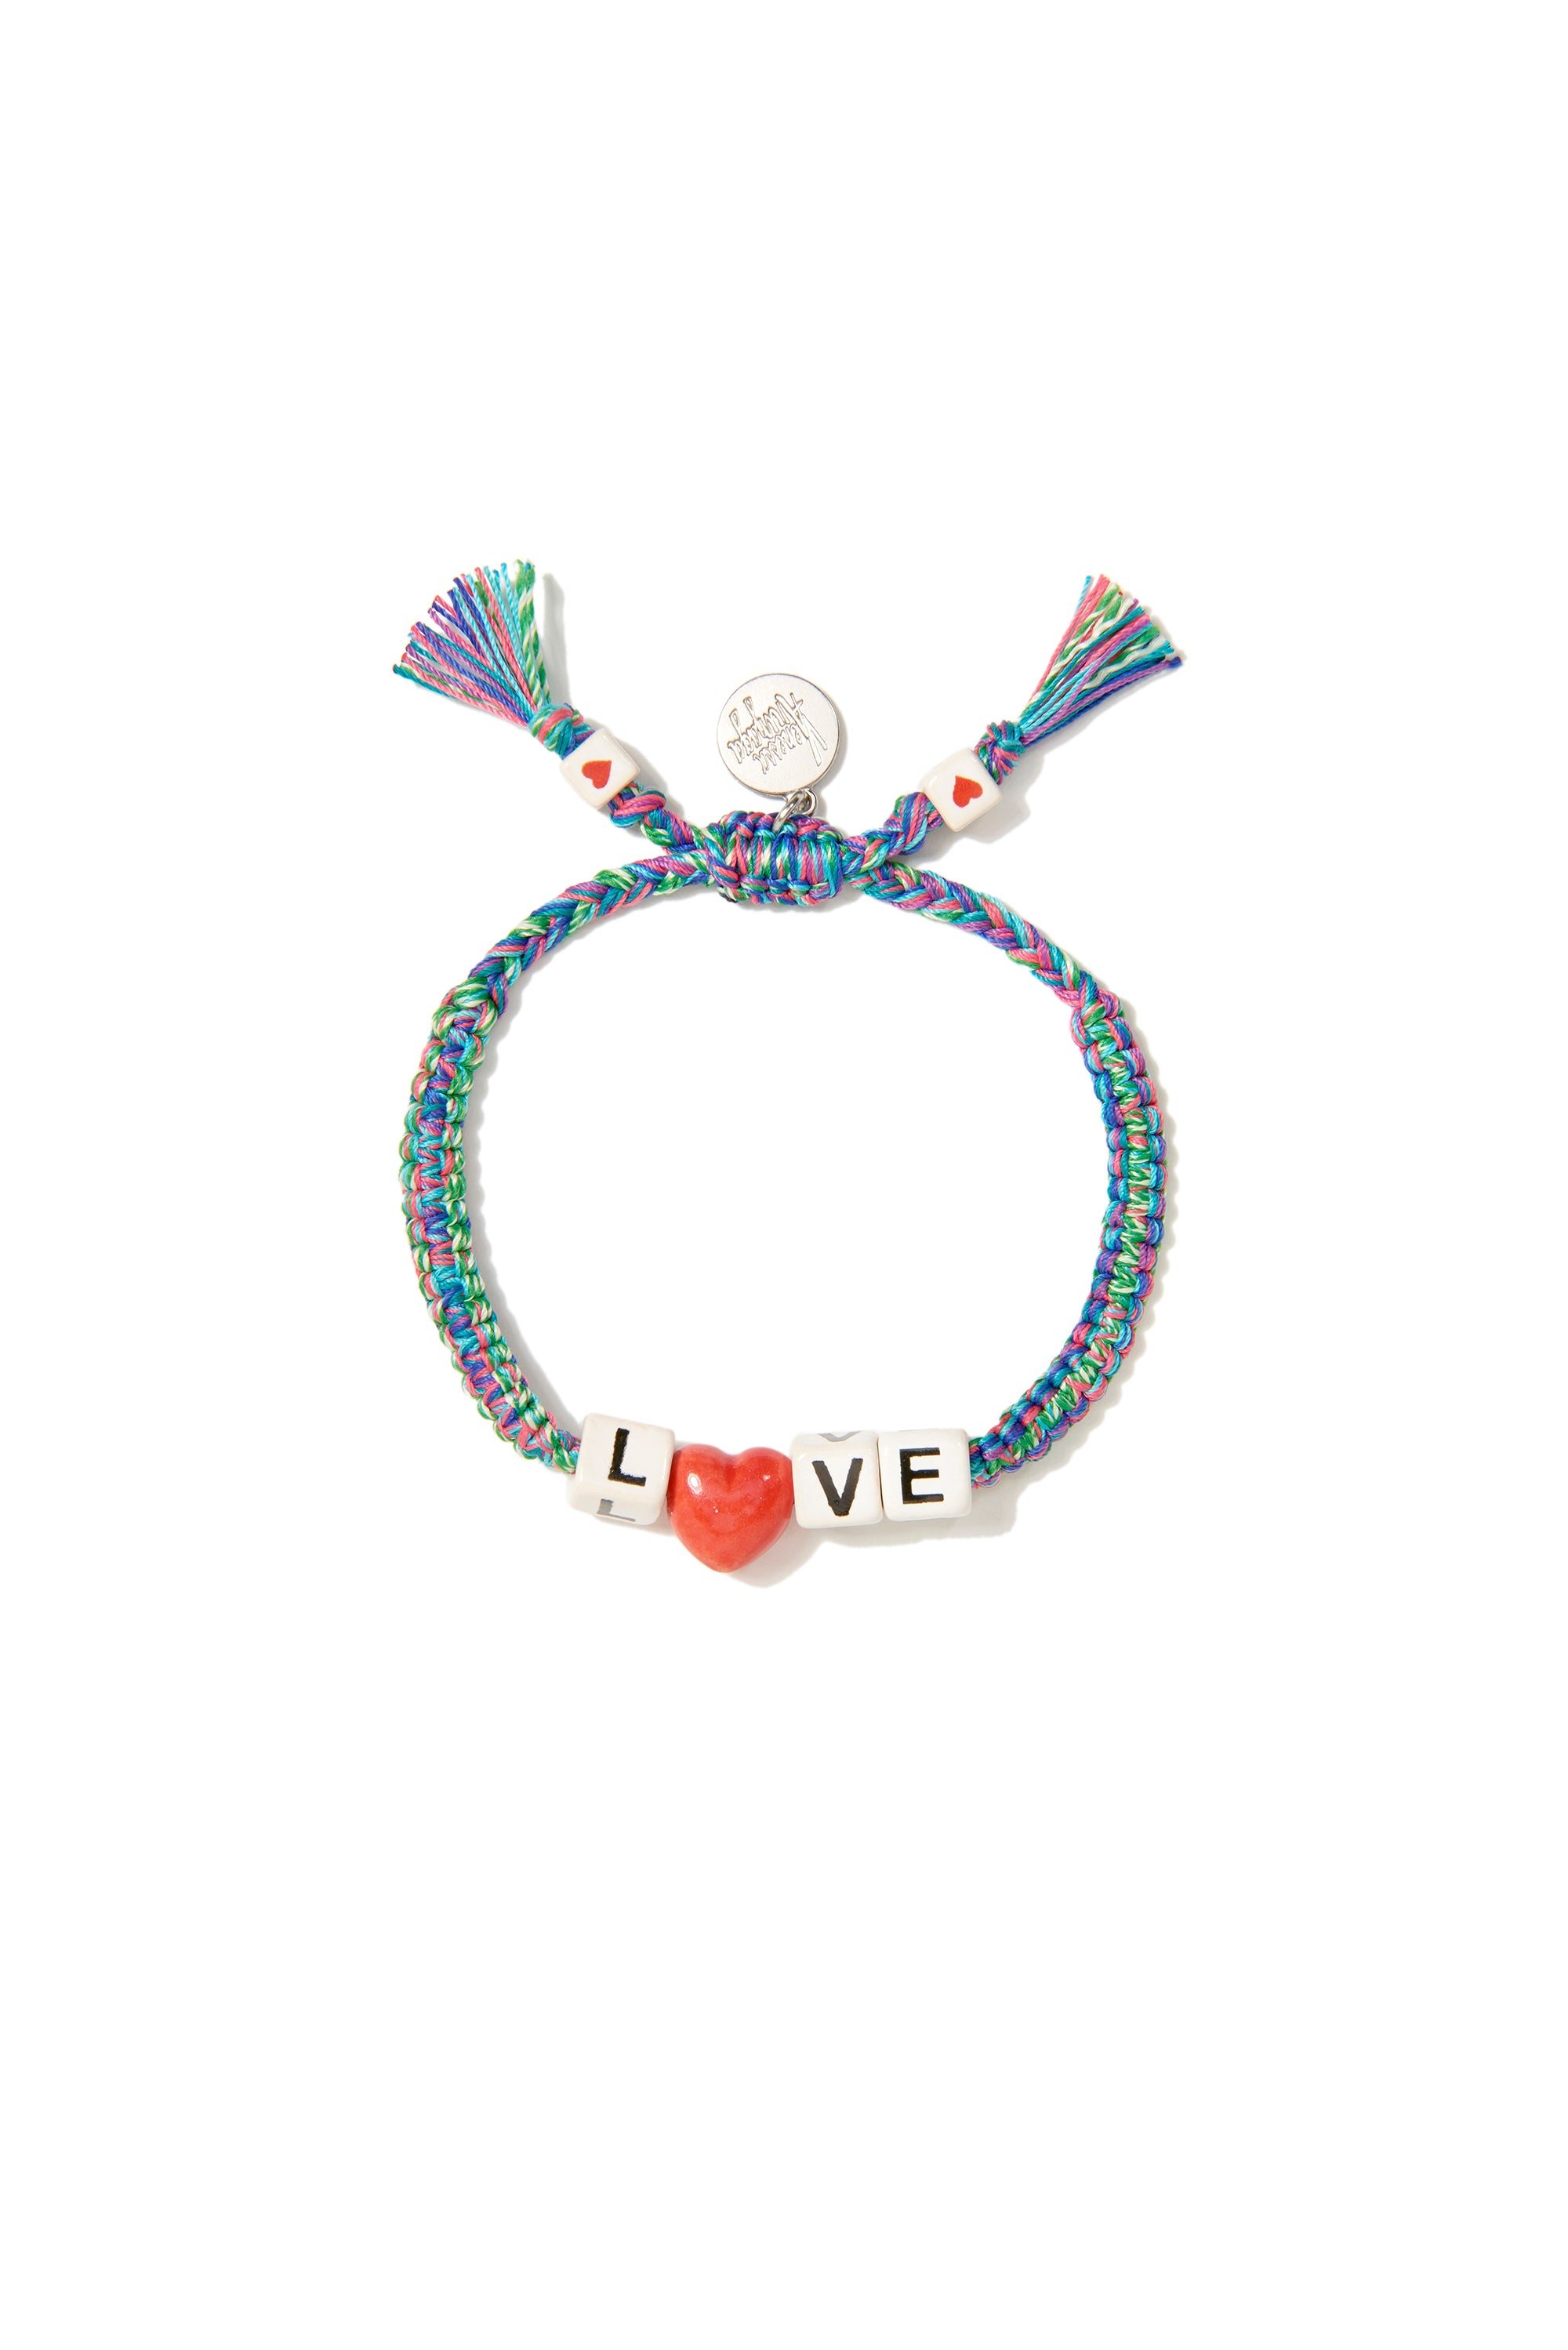 VA Love braceletin blue green melange